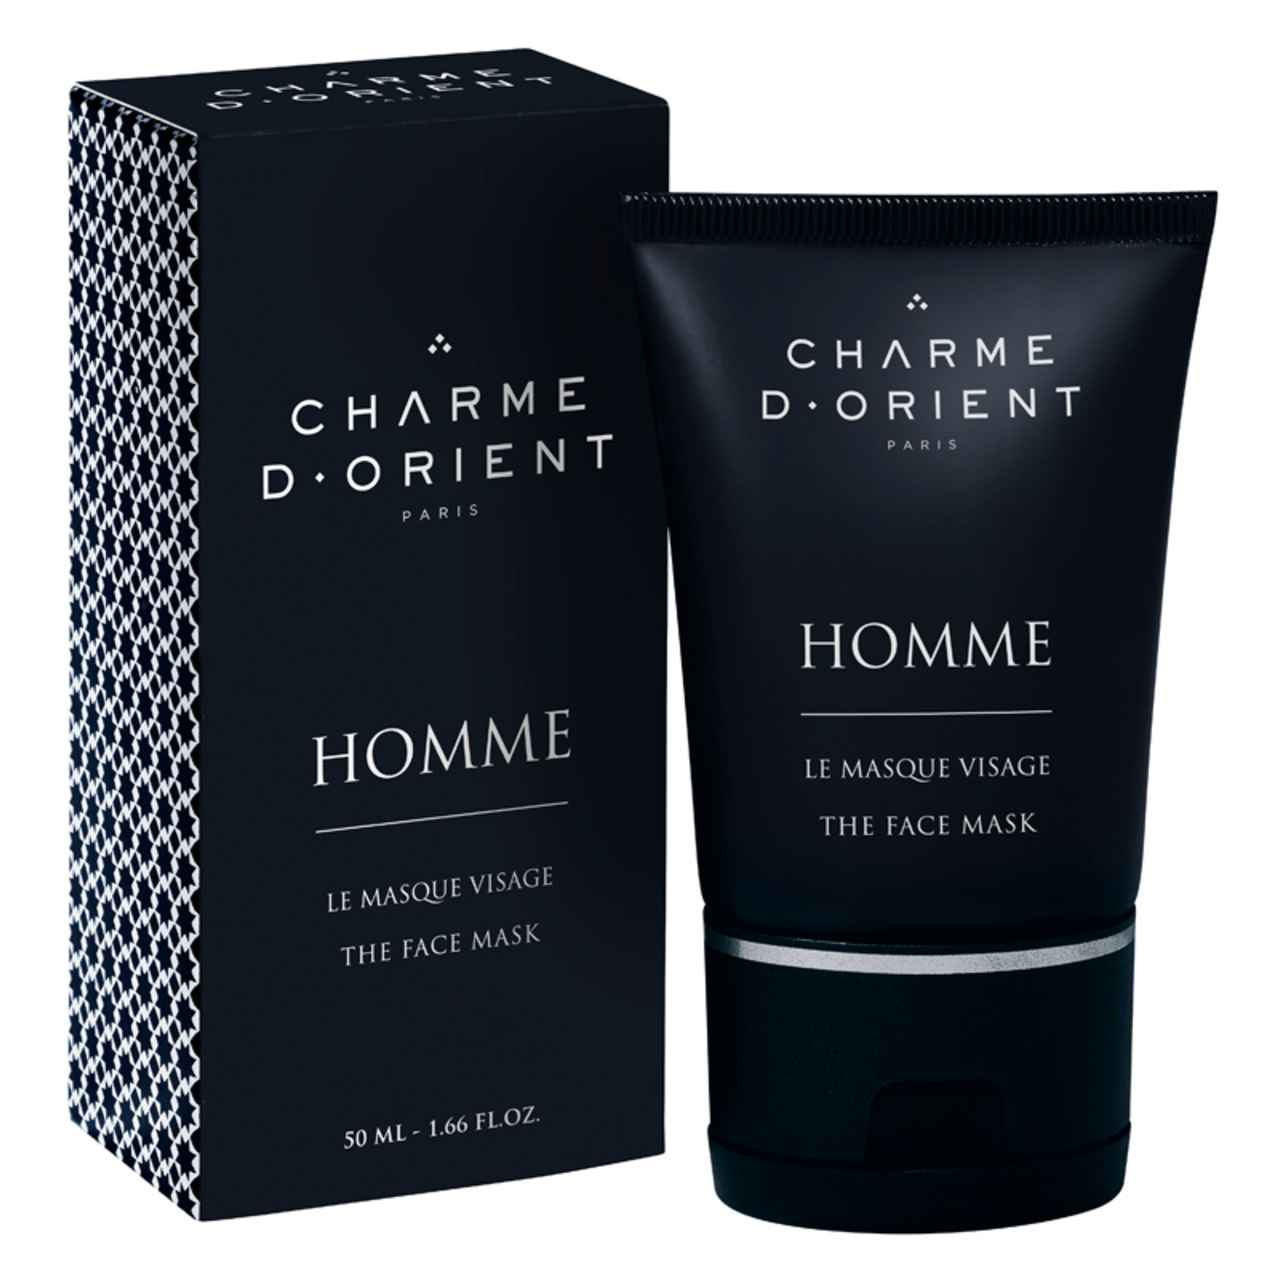 CHARME D'ORIENT HOMME Men Face Mask